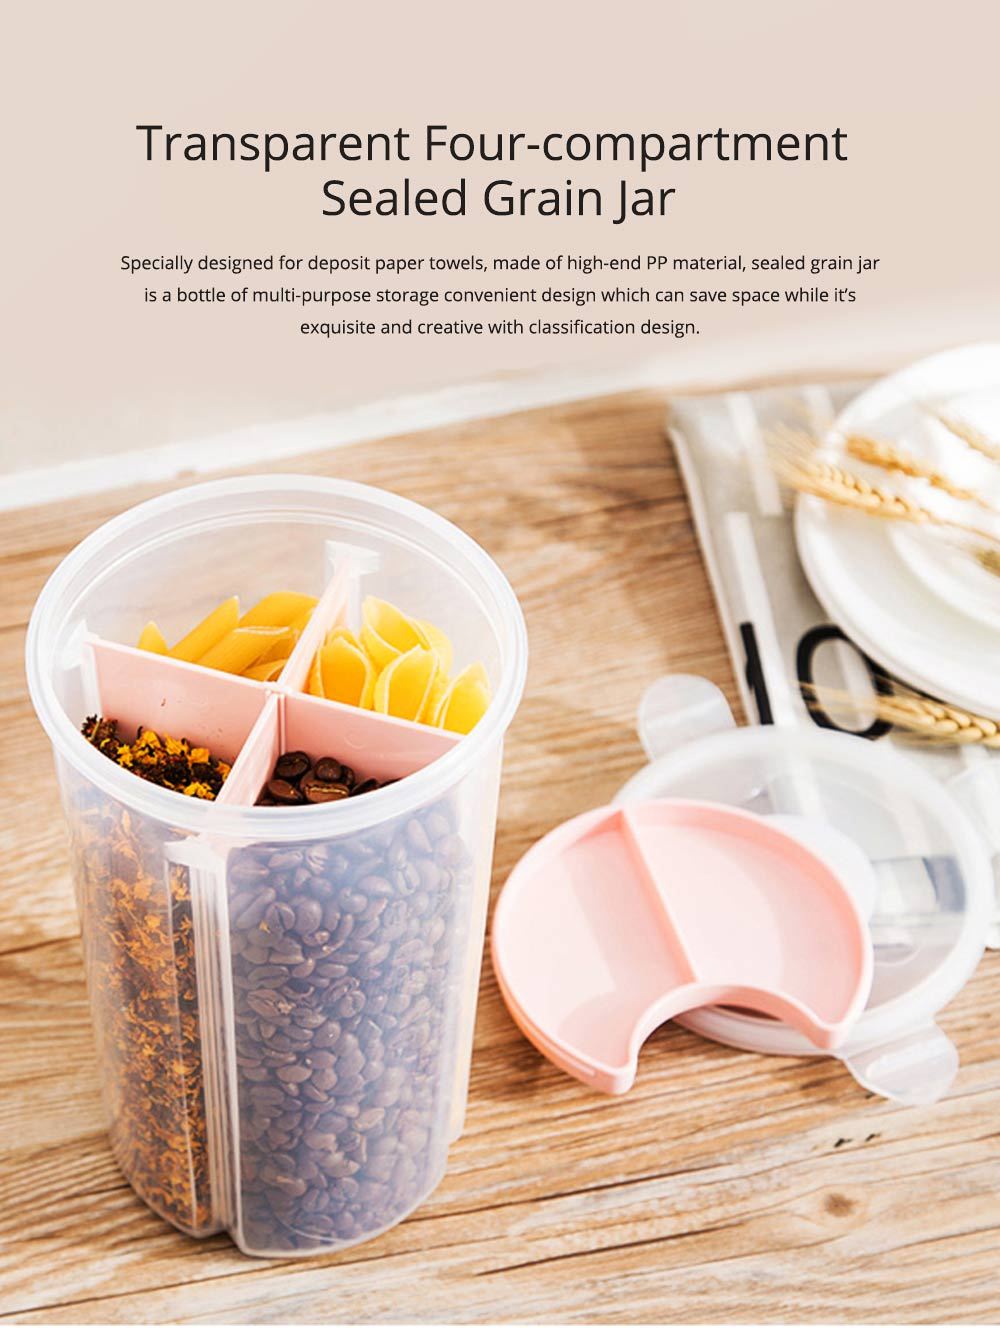 Multi-purpose Storage Convenient Transparent Four-compartment Sealed Grain Jar with Grid Classification Design 0